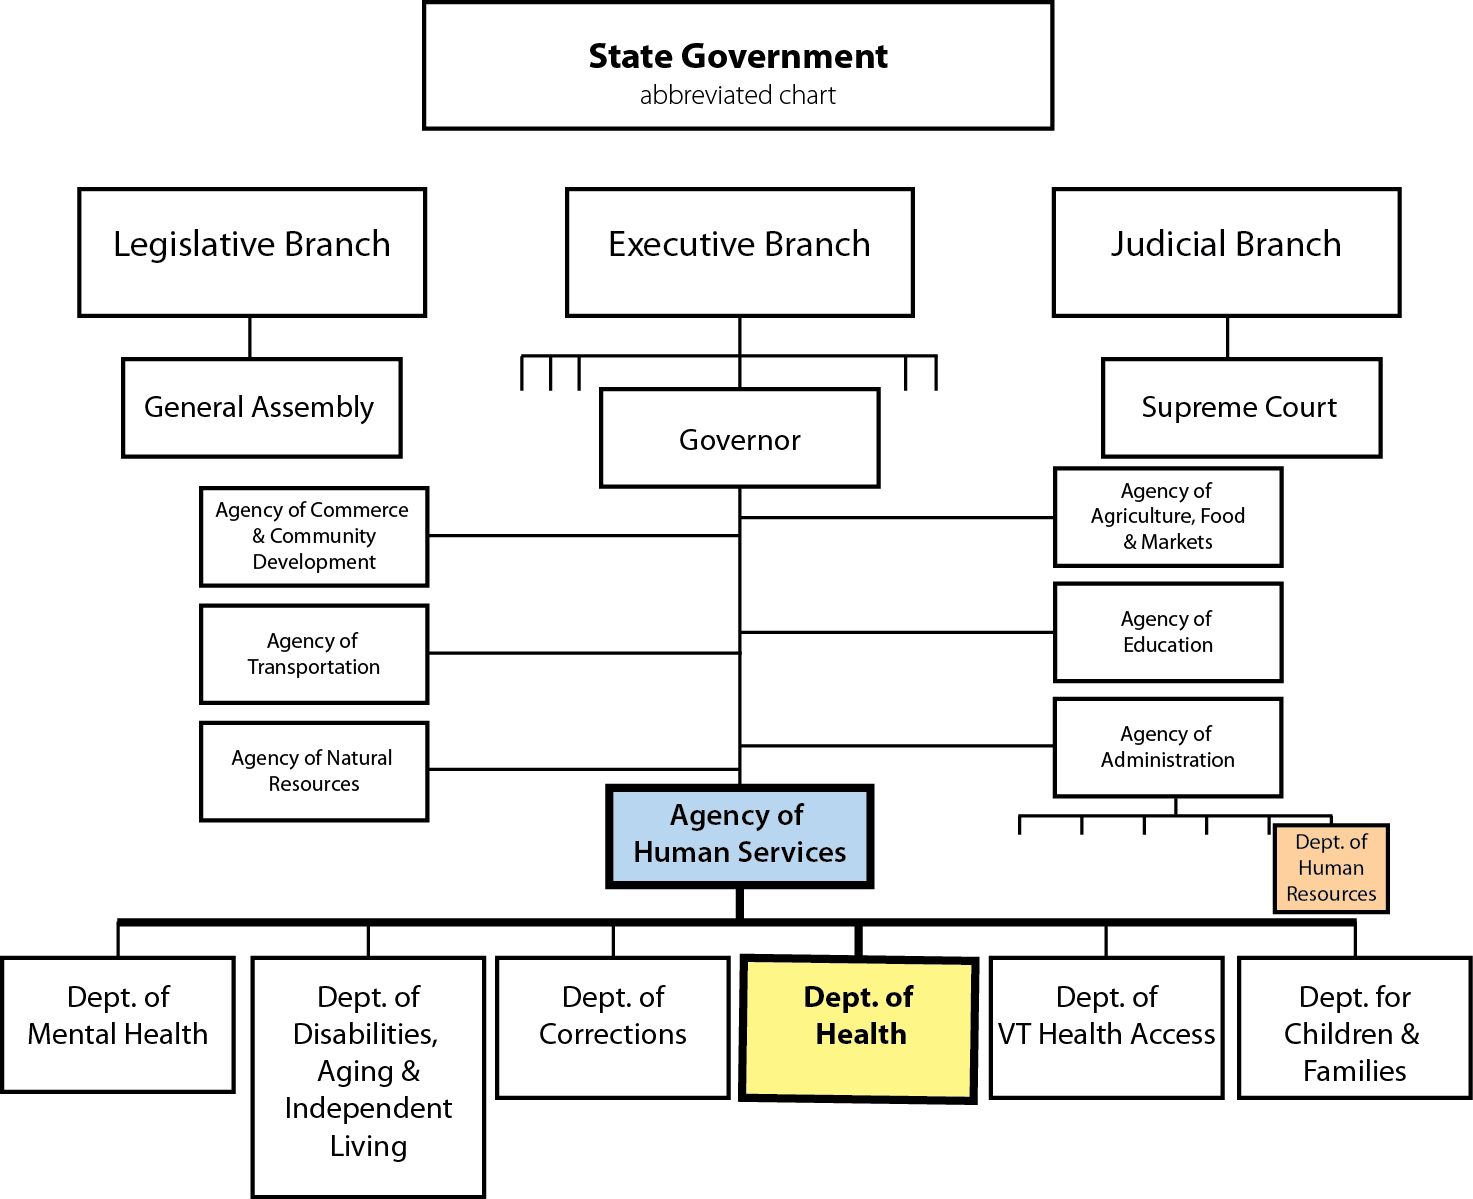 Vermont state government organizational chart